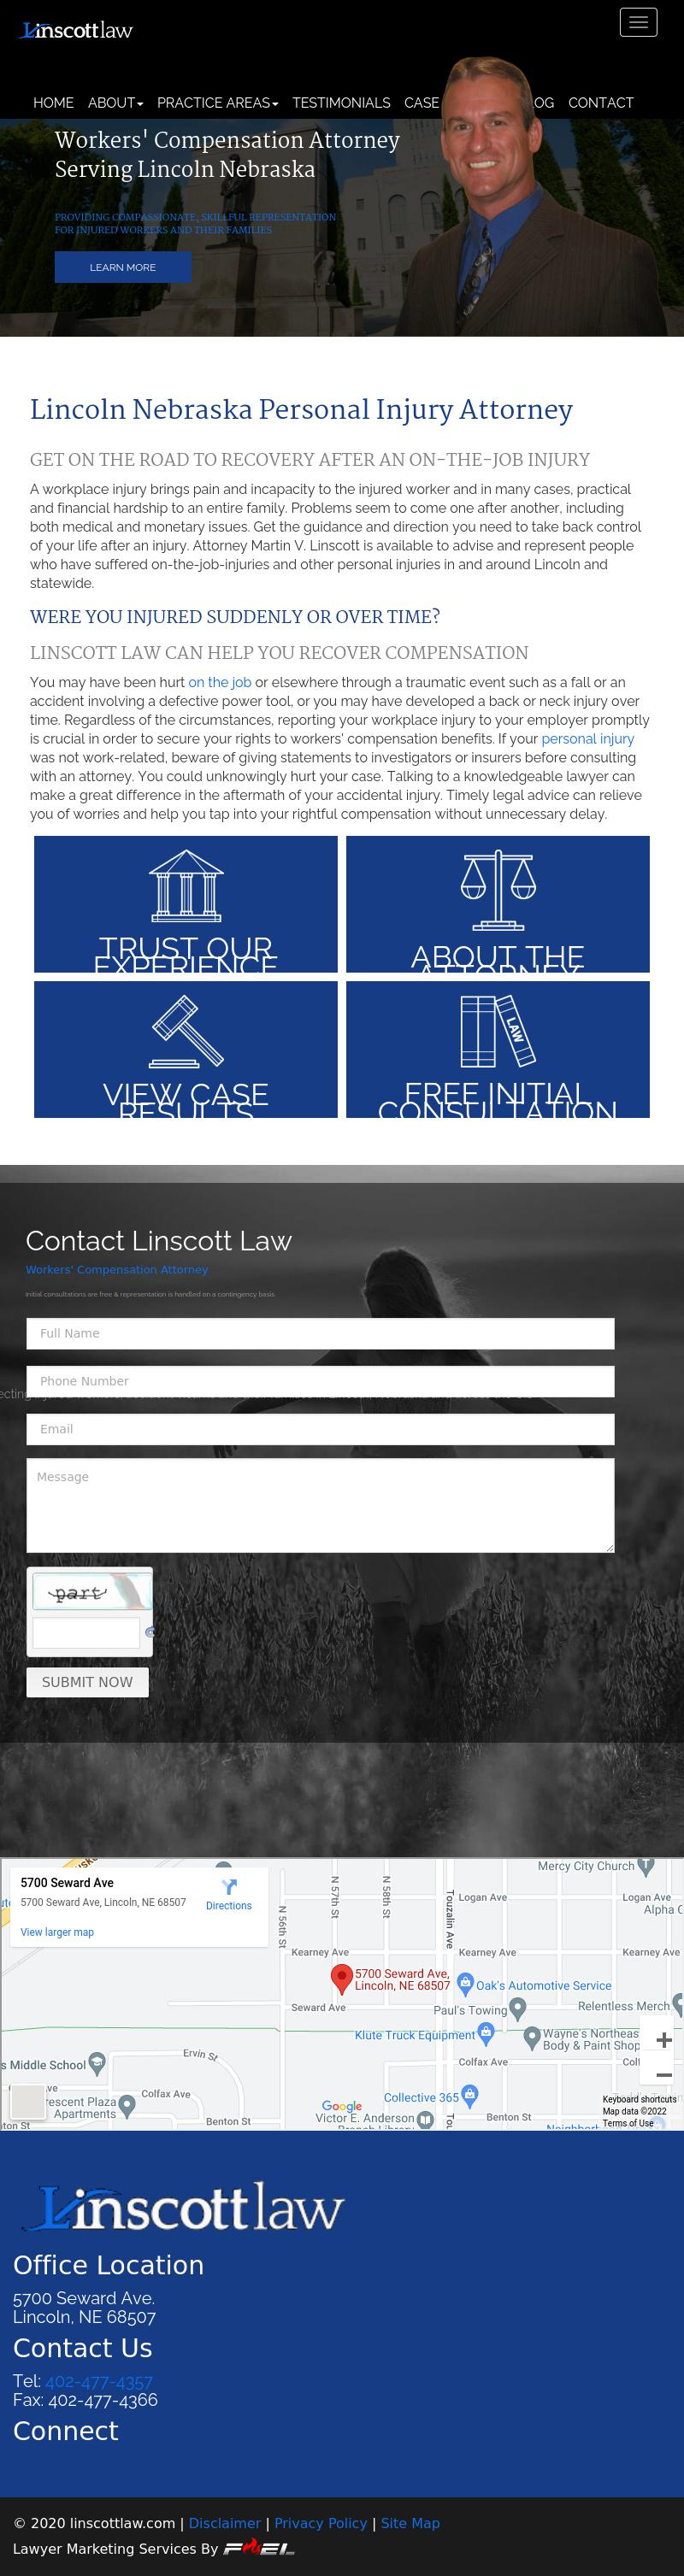 Martin Linscott - Lincoln NE Lawyers